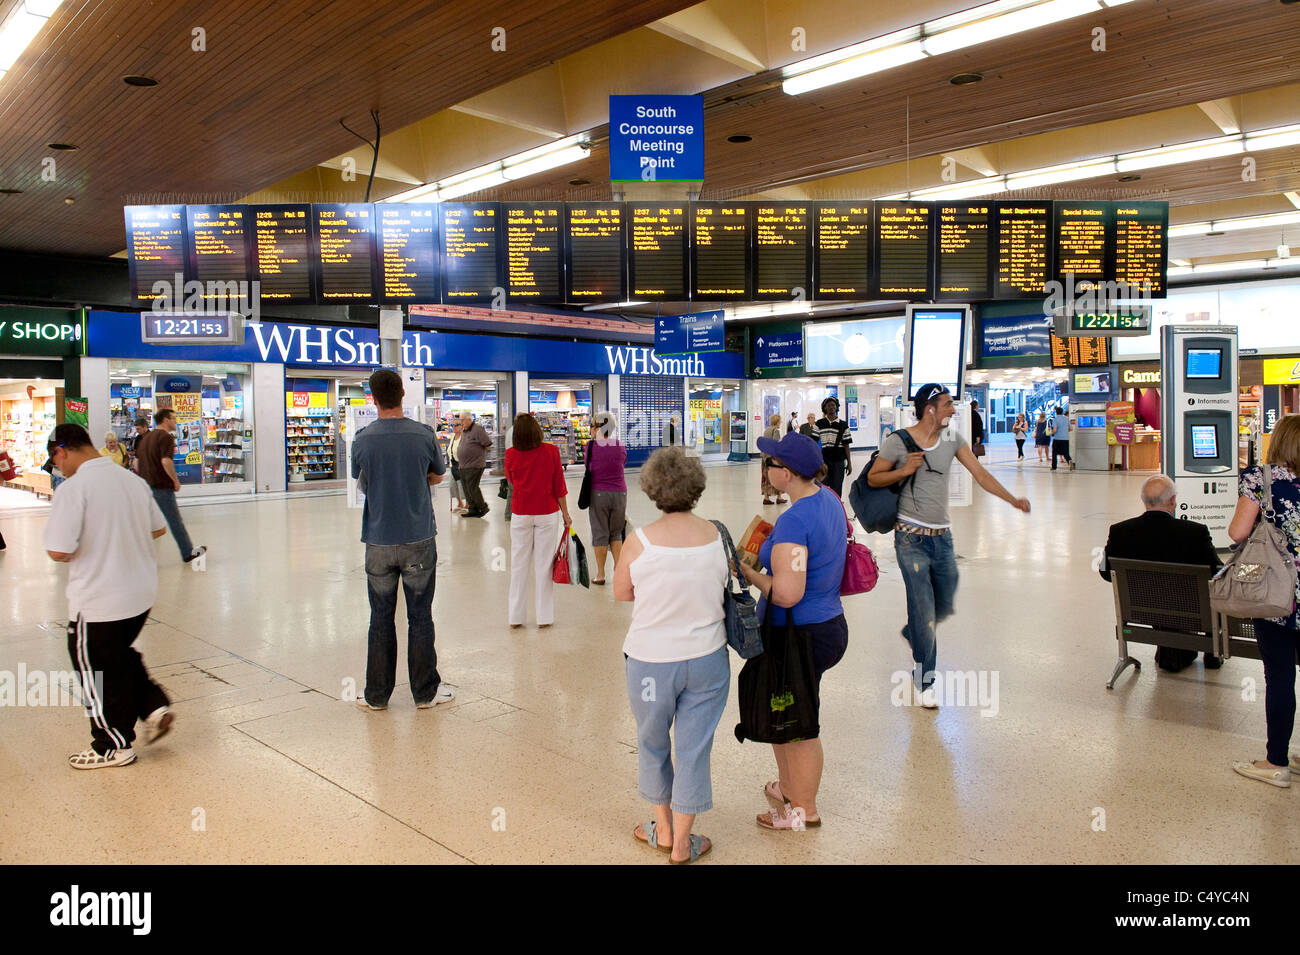 Passengers checking the arrival and departure information boards on the concourse area of Leeds railway station, - Stock Image